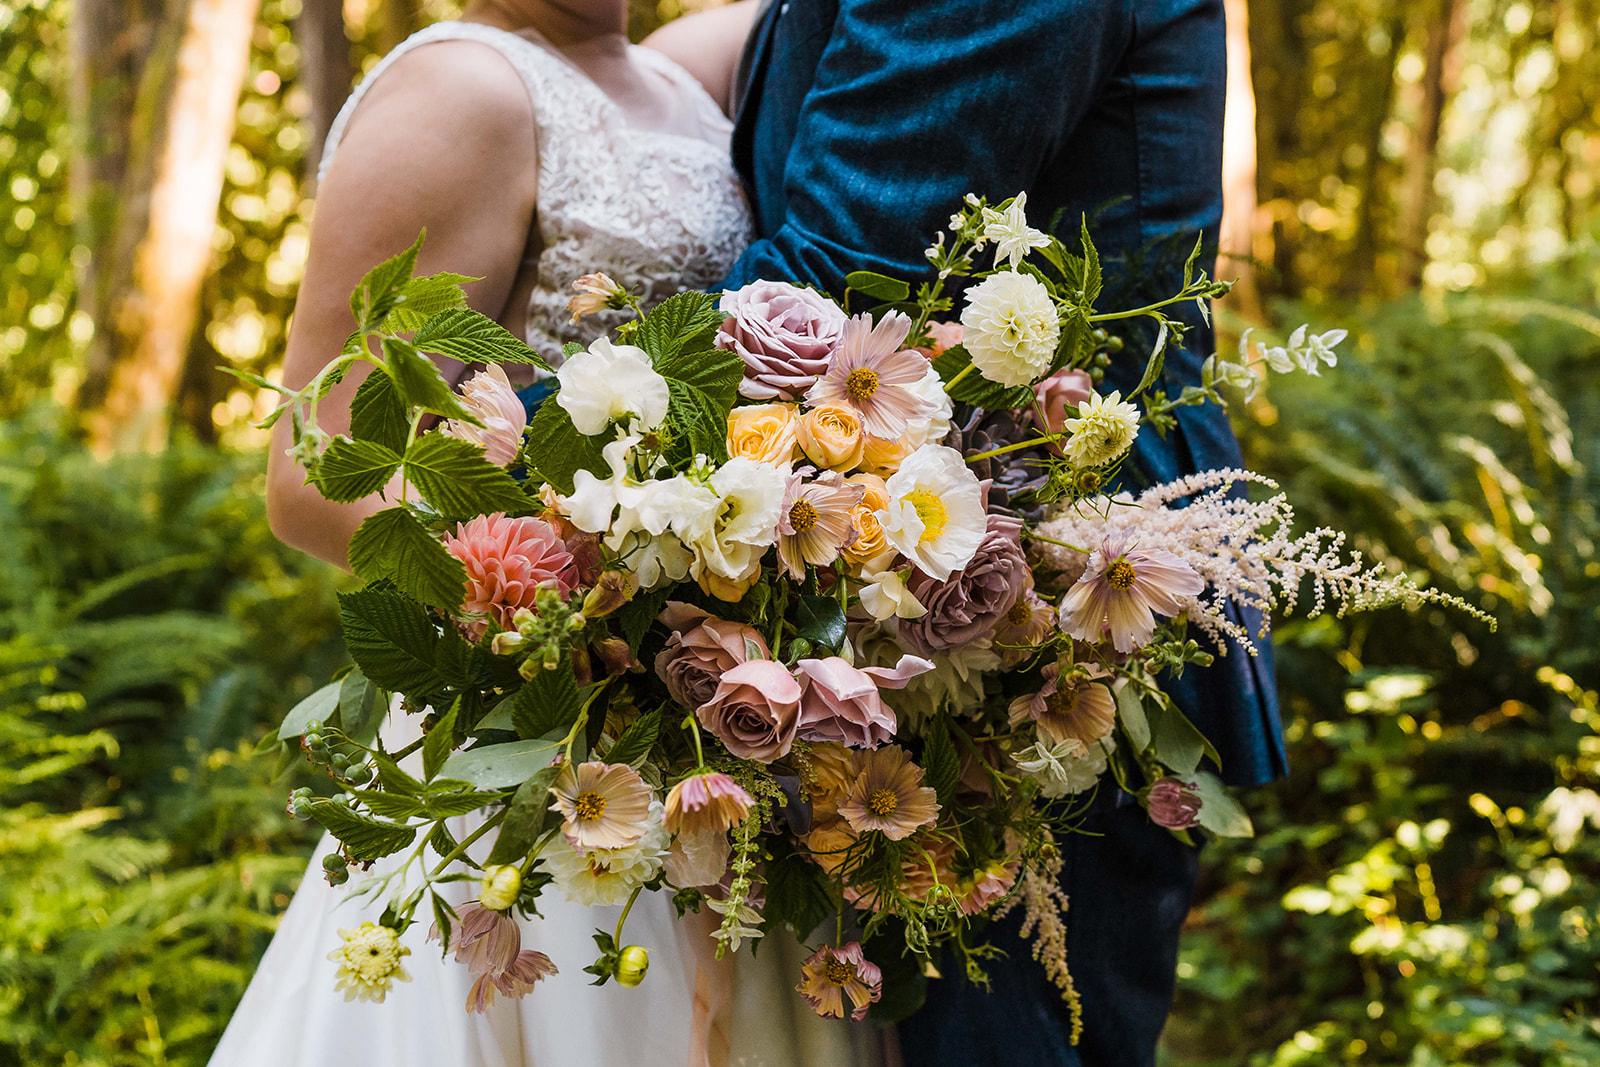 a bridal bouquet full of garden roses, poppies, cosmos, astilbe, dahlias, and raspberry and blueberry greens